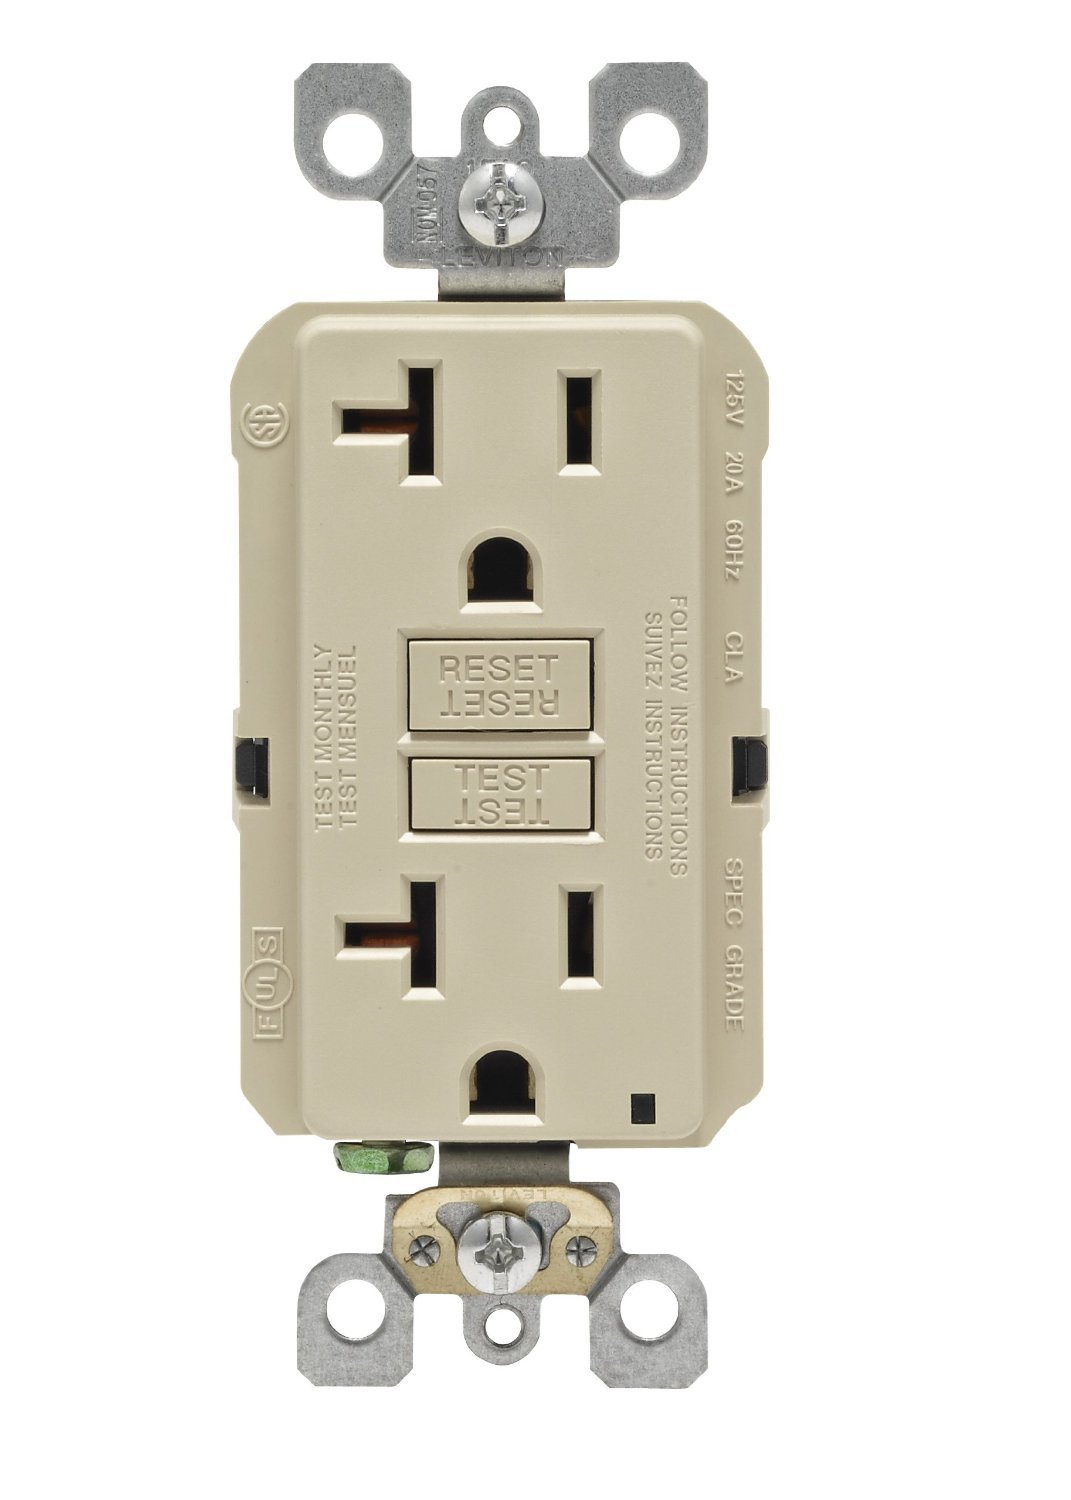 61jfg5T%2B LL._SL1500_ leviton gfnt1 w self test smartlockpro slim gfci non tamper GFCI Breaker Wiring Diagram at crackthecode.co